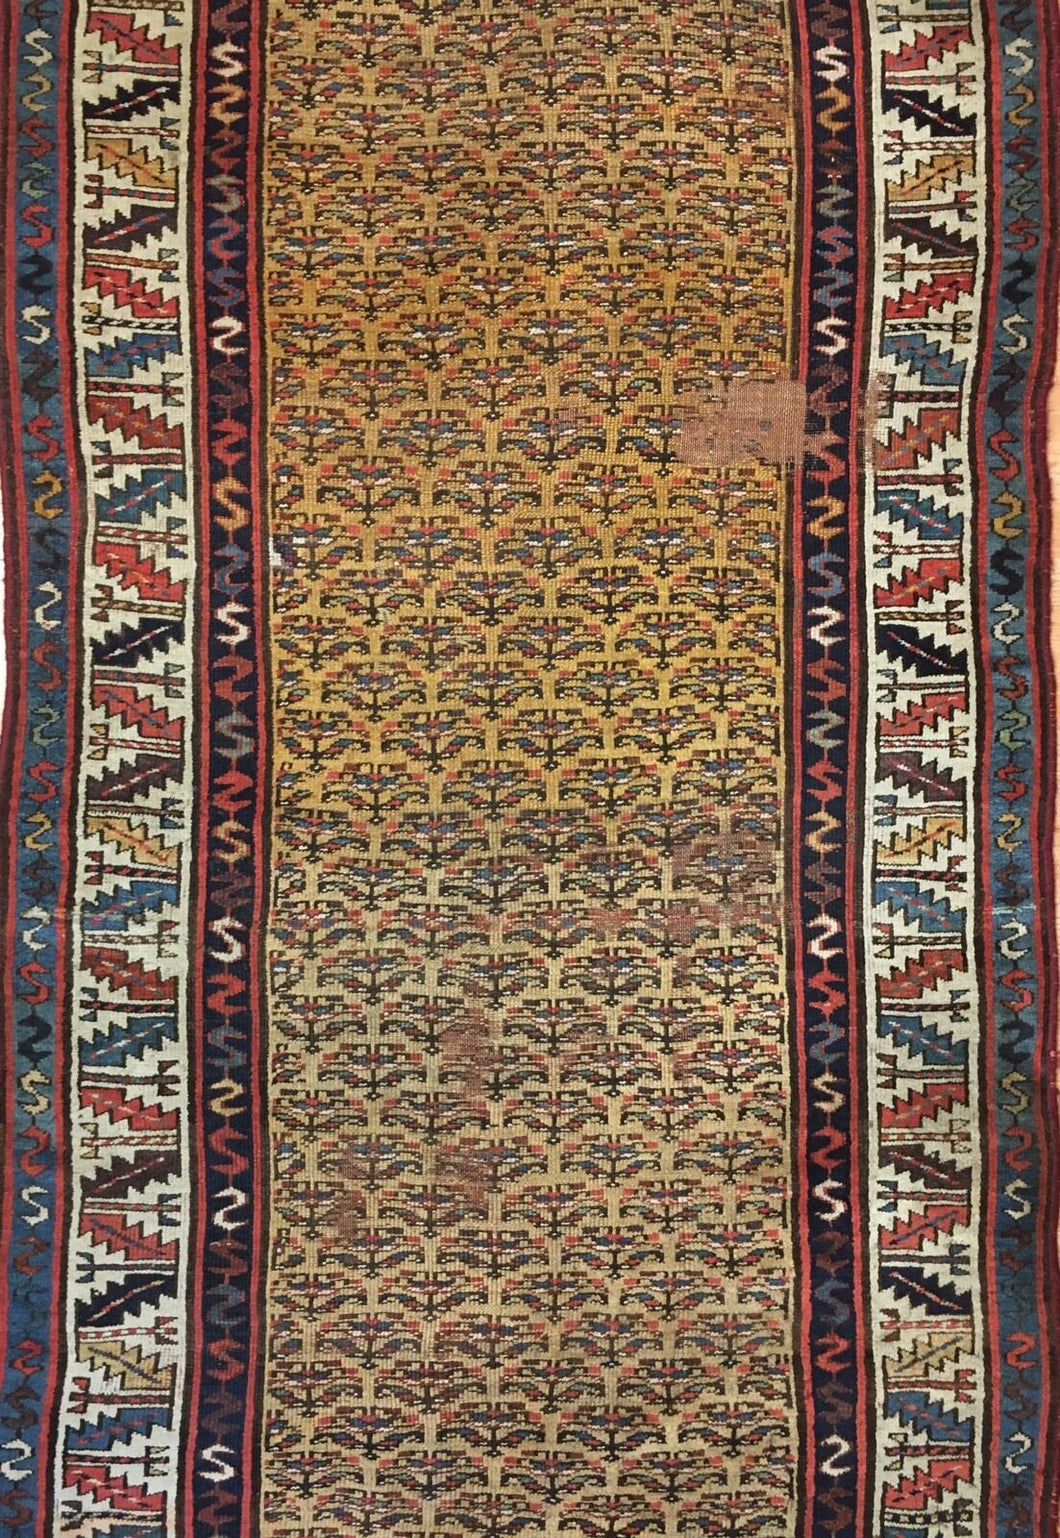 Classic Caucasian - 1940s Antique Tribal Rug - Oriental Carpet - 6'6